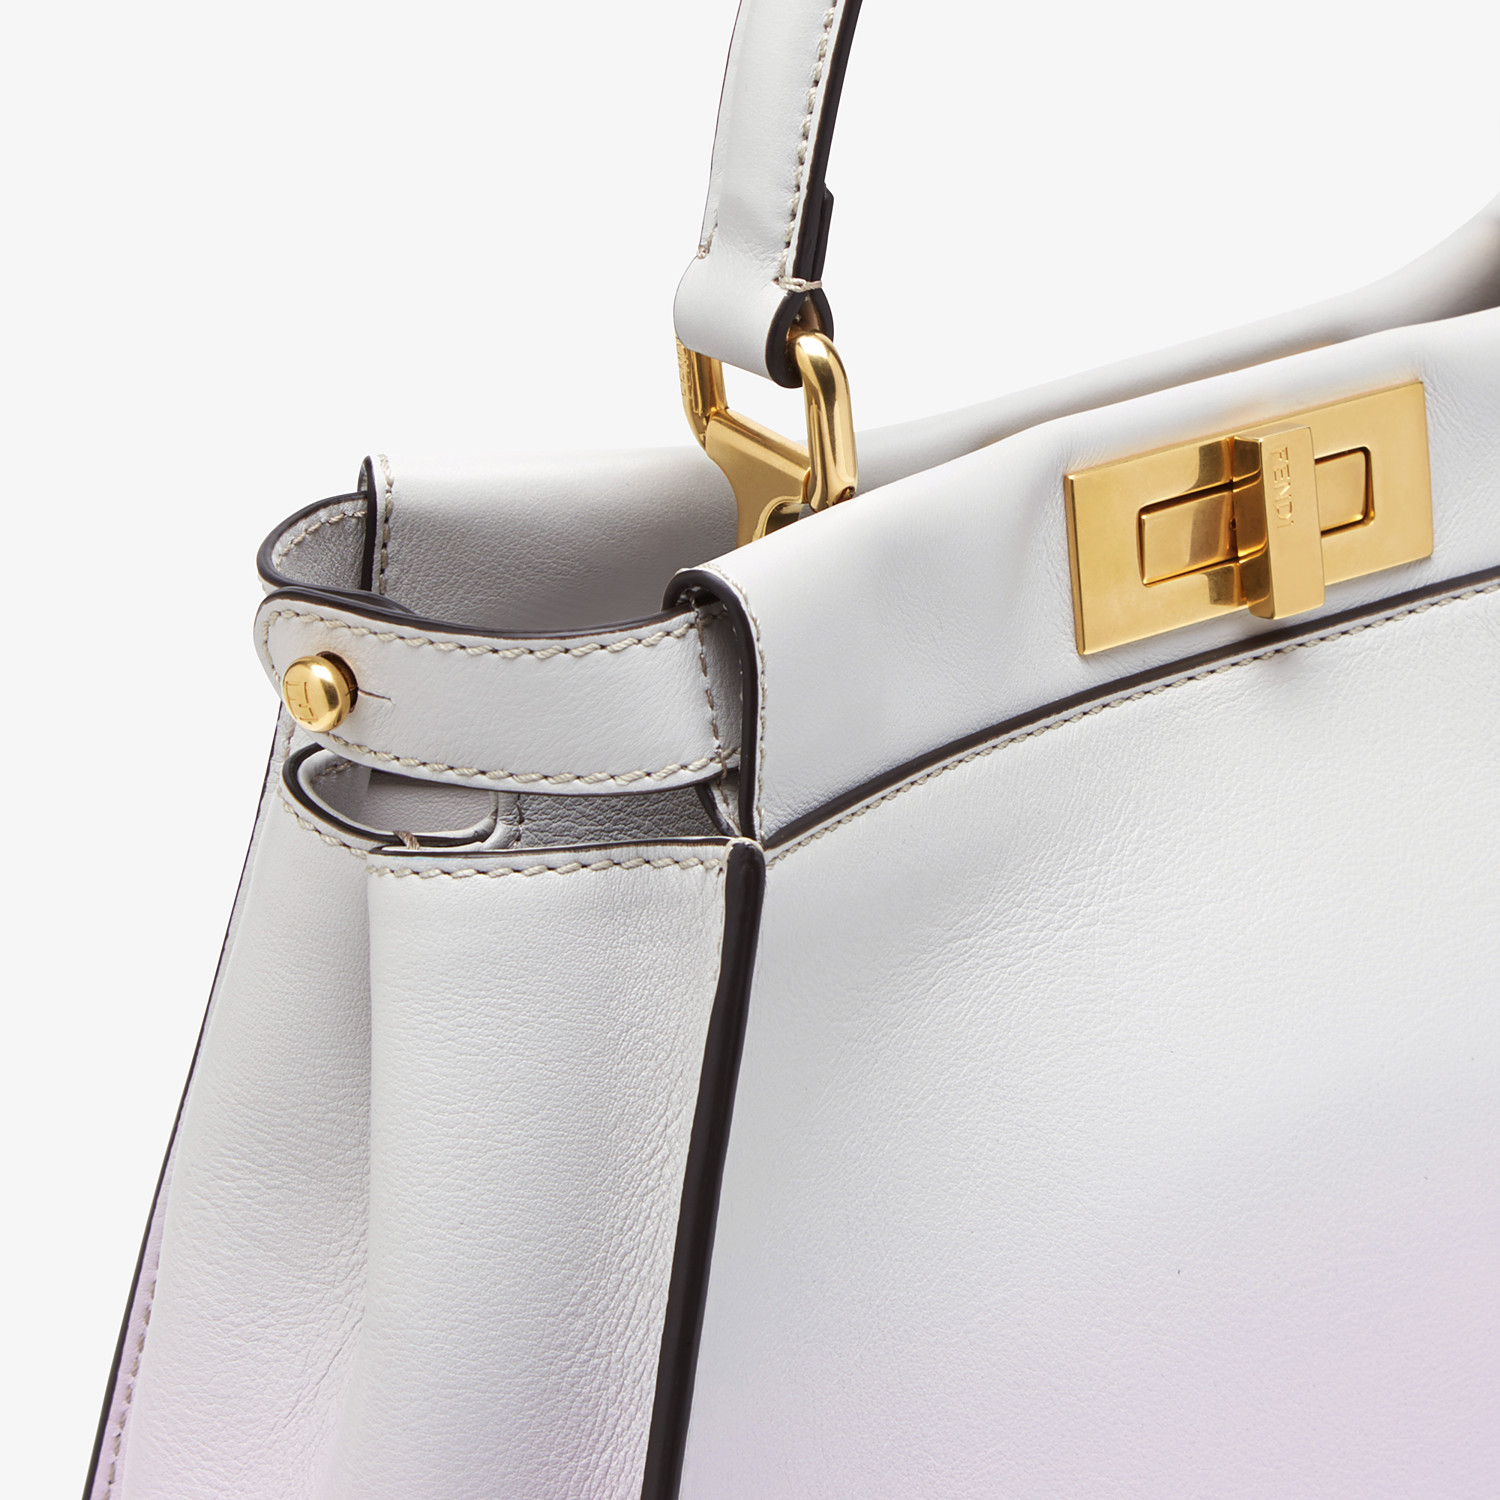 FENDI PEEKABOO ICONIC MEDIUM - Leather bag in graduated colors - view 6 detail